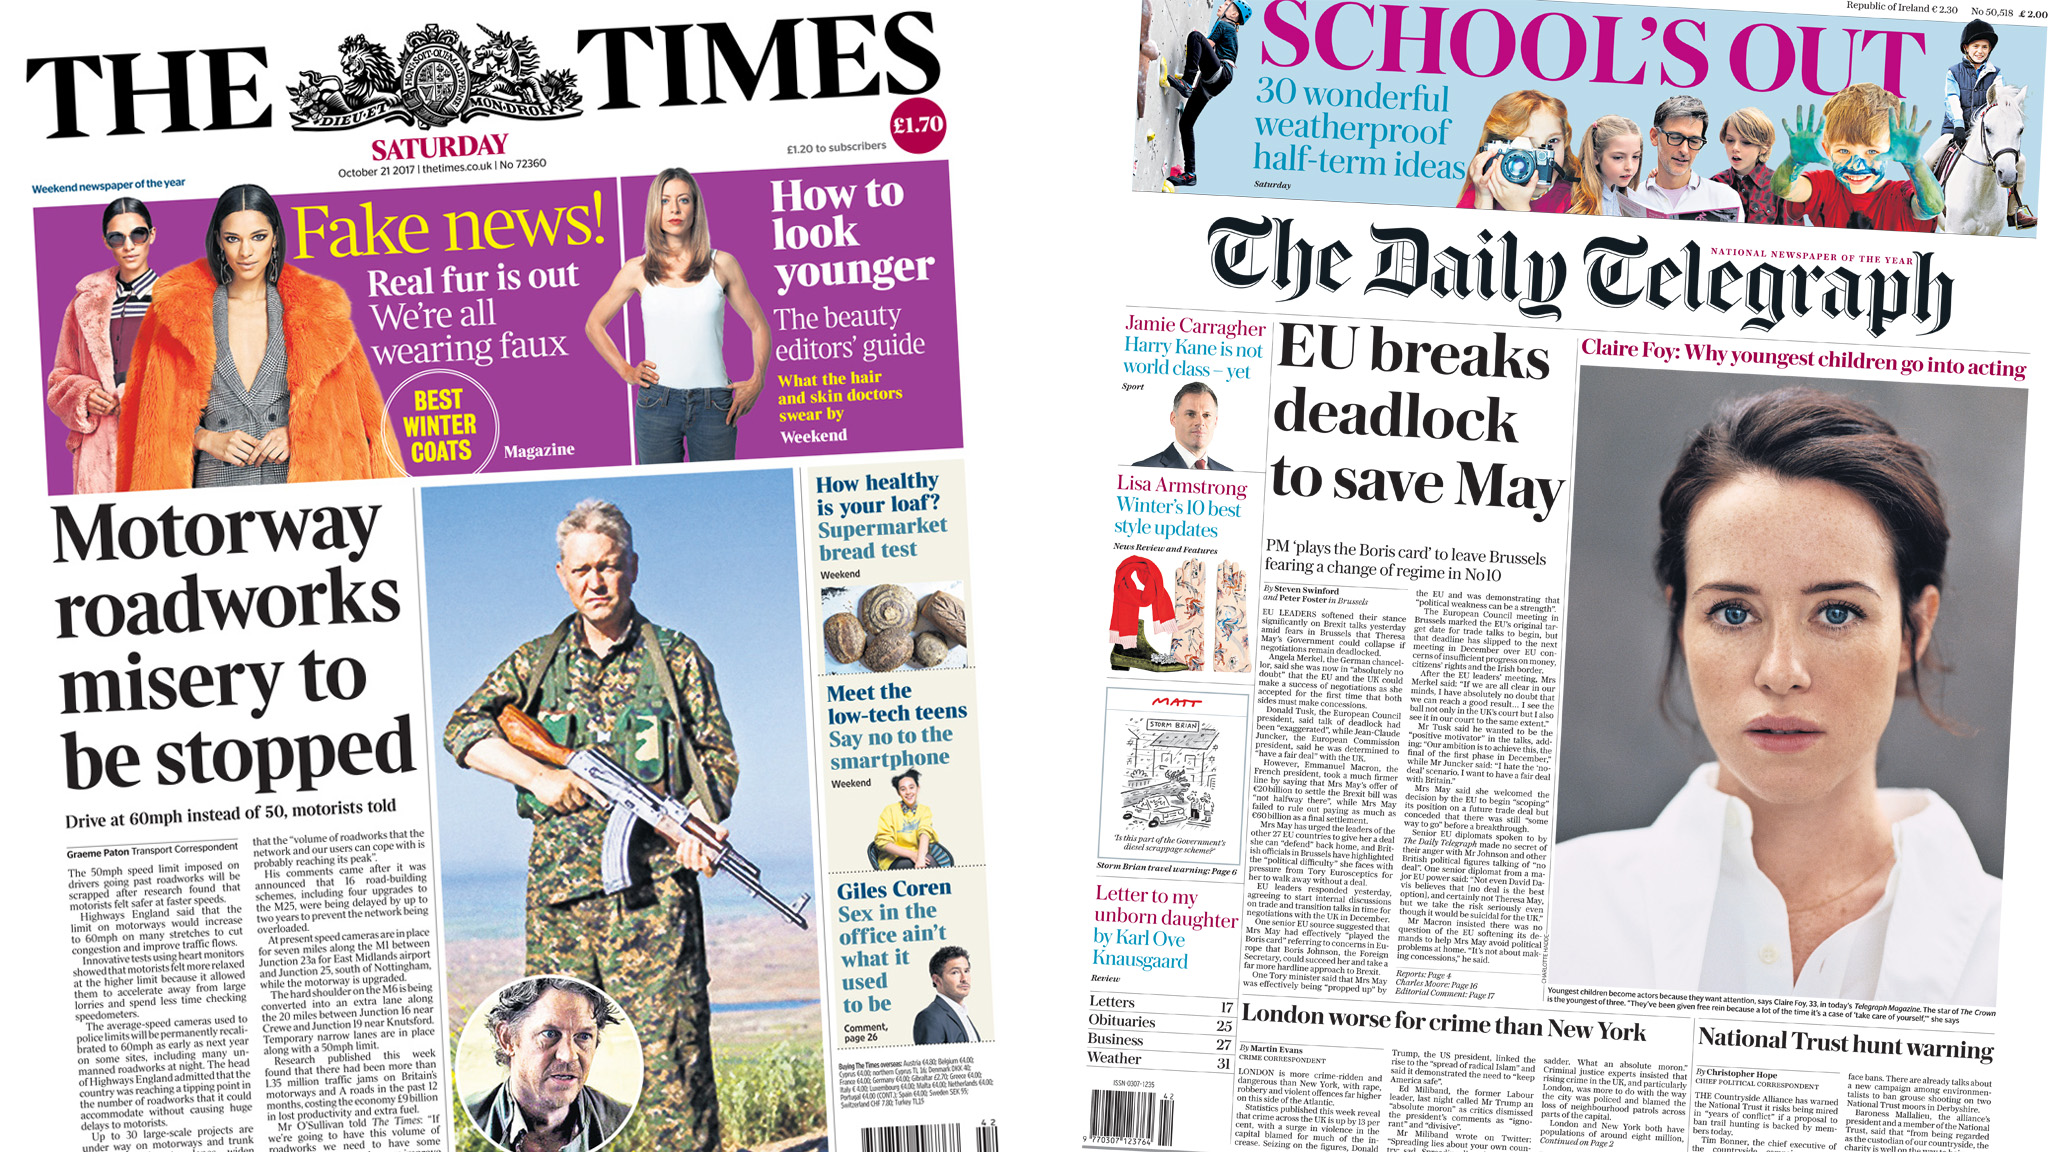 The Papers: Road 'misery' to end and EU 'saves May'